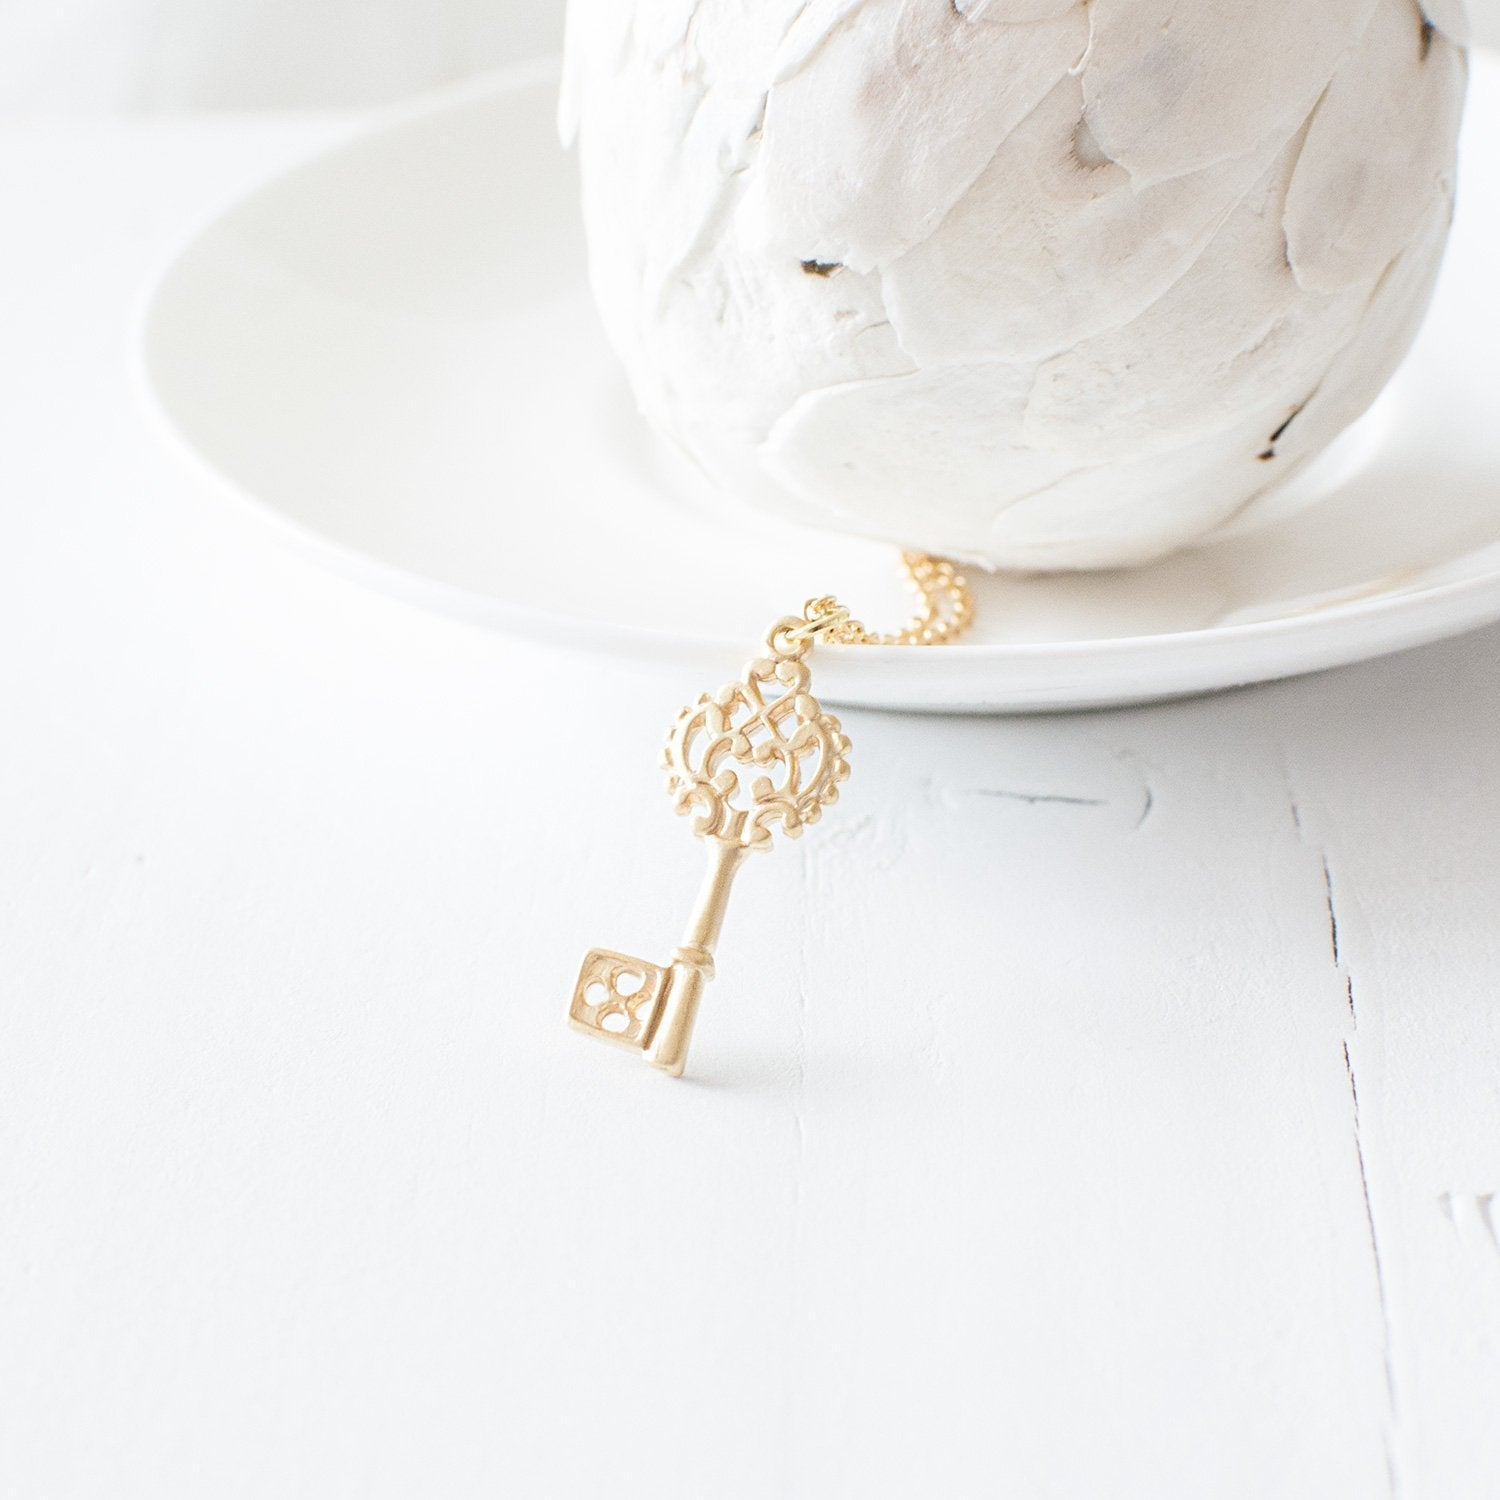 Gold Key Pendant Necklace